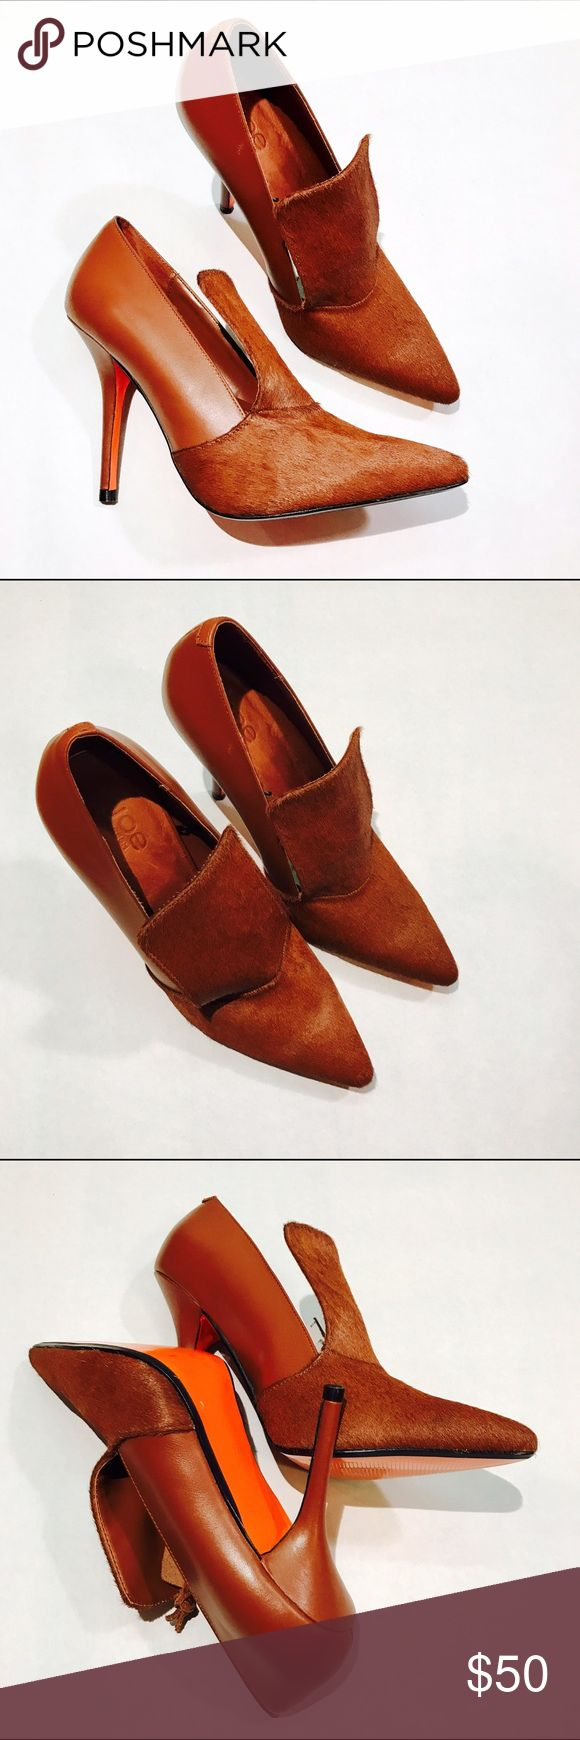 """JOE FRESH LEATHER CALF HEELS #195 JOE Fresh, brown leather heel. CONDITION: NWT 🎁 SHIPS WITHIN 24HRS  HEEL HIGHT: 3.5"""" *All measurements taken while item is laid flat (doubled when necessary) and measured across the front  MATERIAL: Leather INSTAGRAM @ORNAMENTALSTONE 🚫Trading Joe Fresh Shoes Heels"""